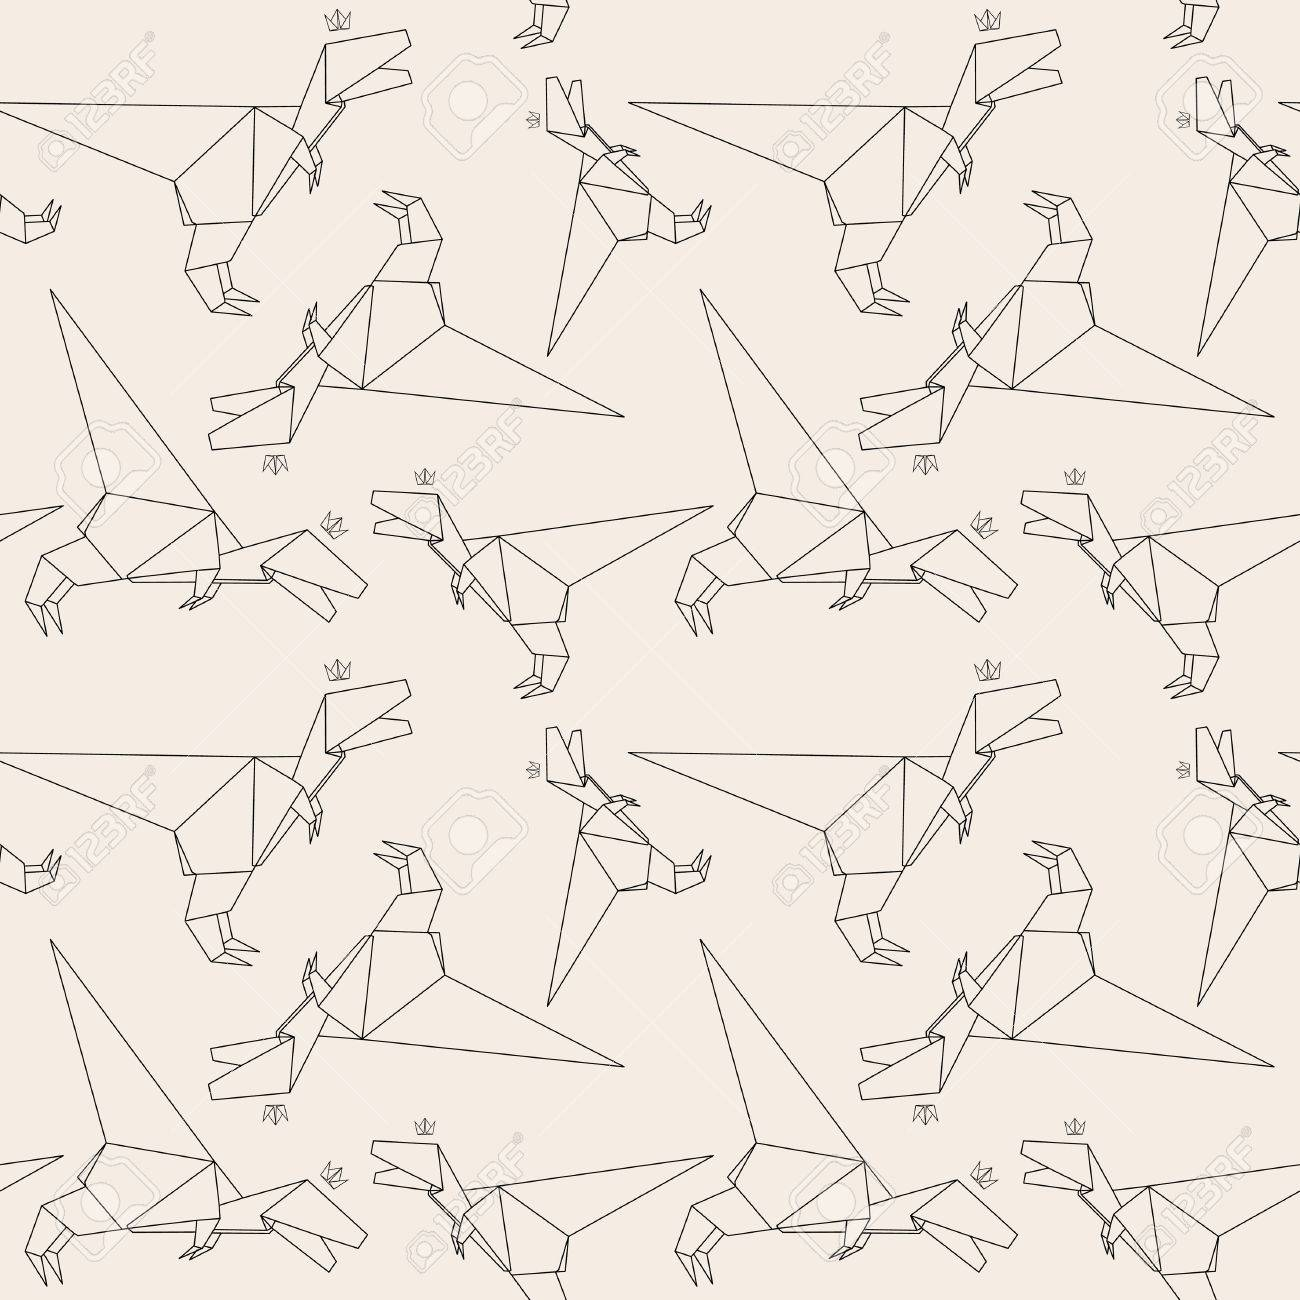 thin line dinosaur. paper origami style. vector seamless pattern